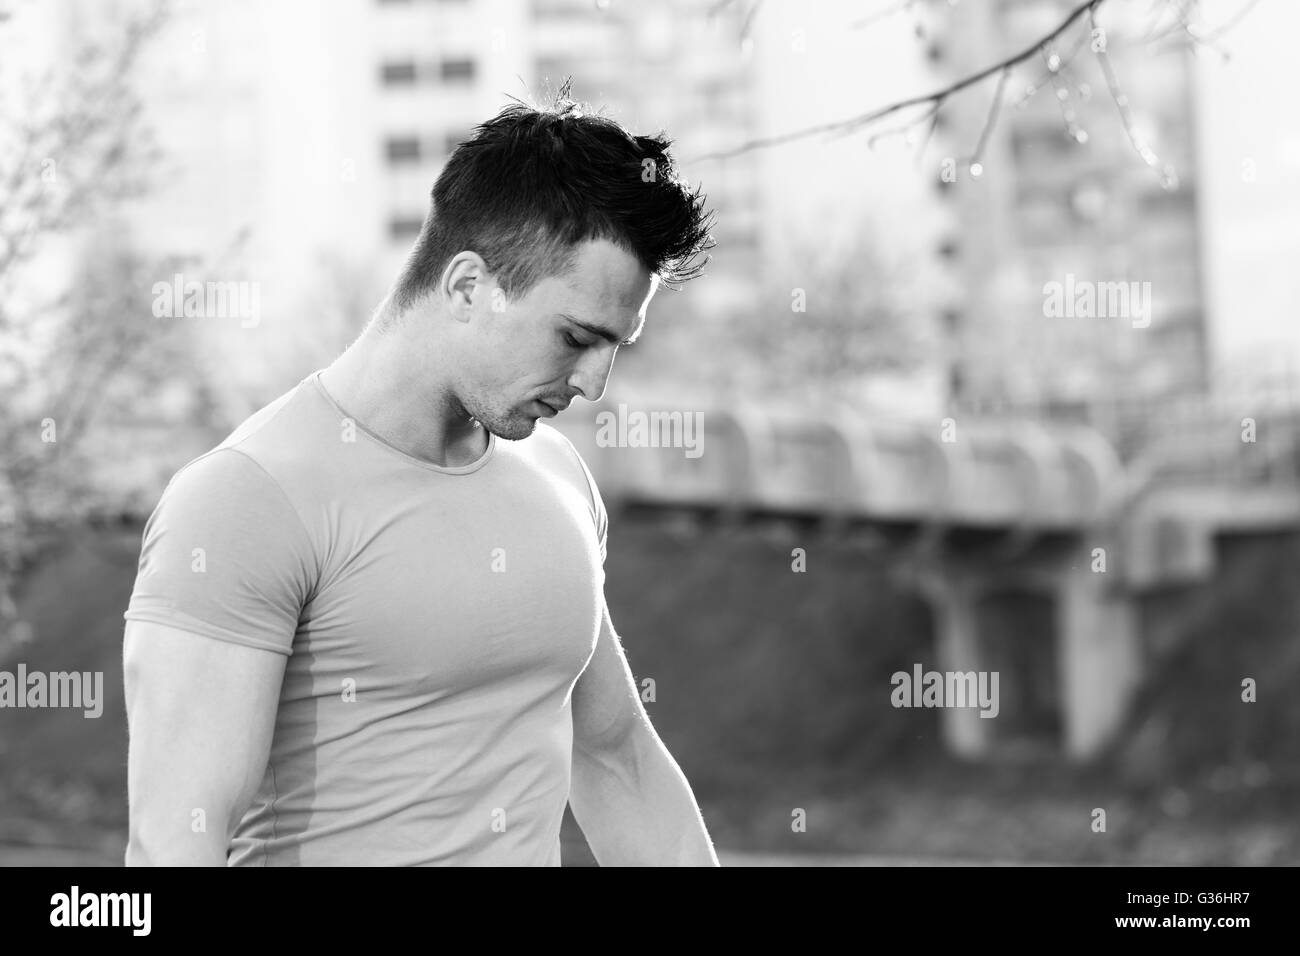 portrait of Recreational ruLifestyle portrait sporty man training in the city, workout, fitness, sport - concept - Stock Image